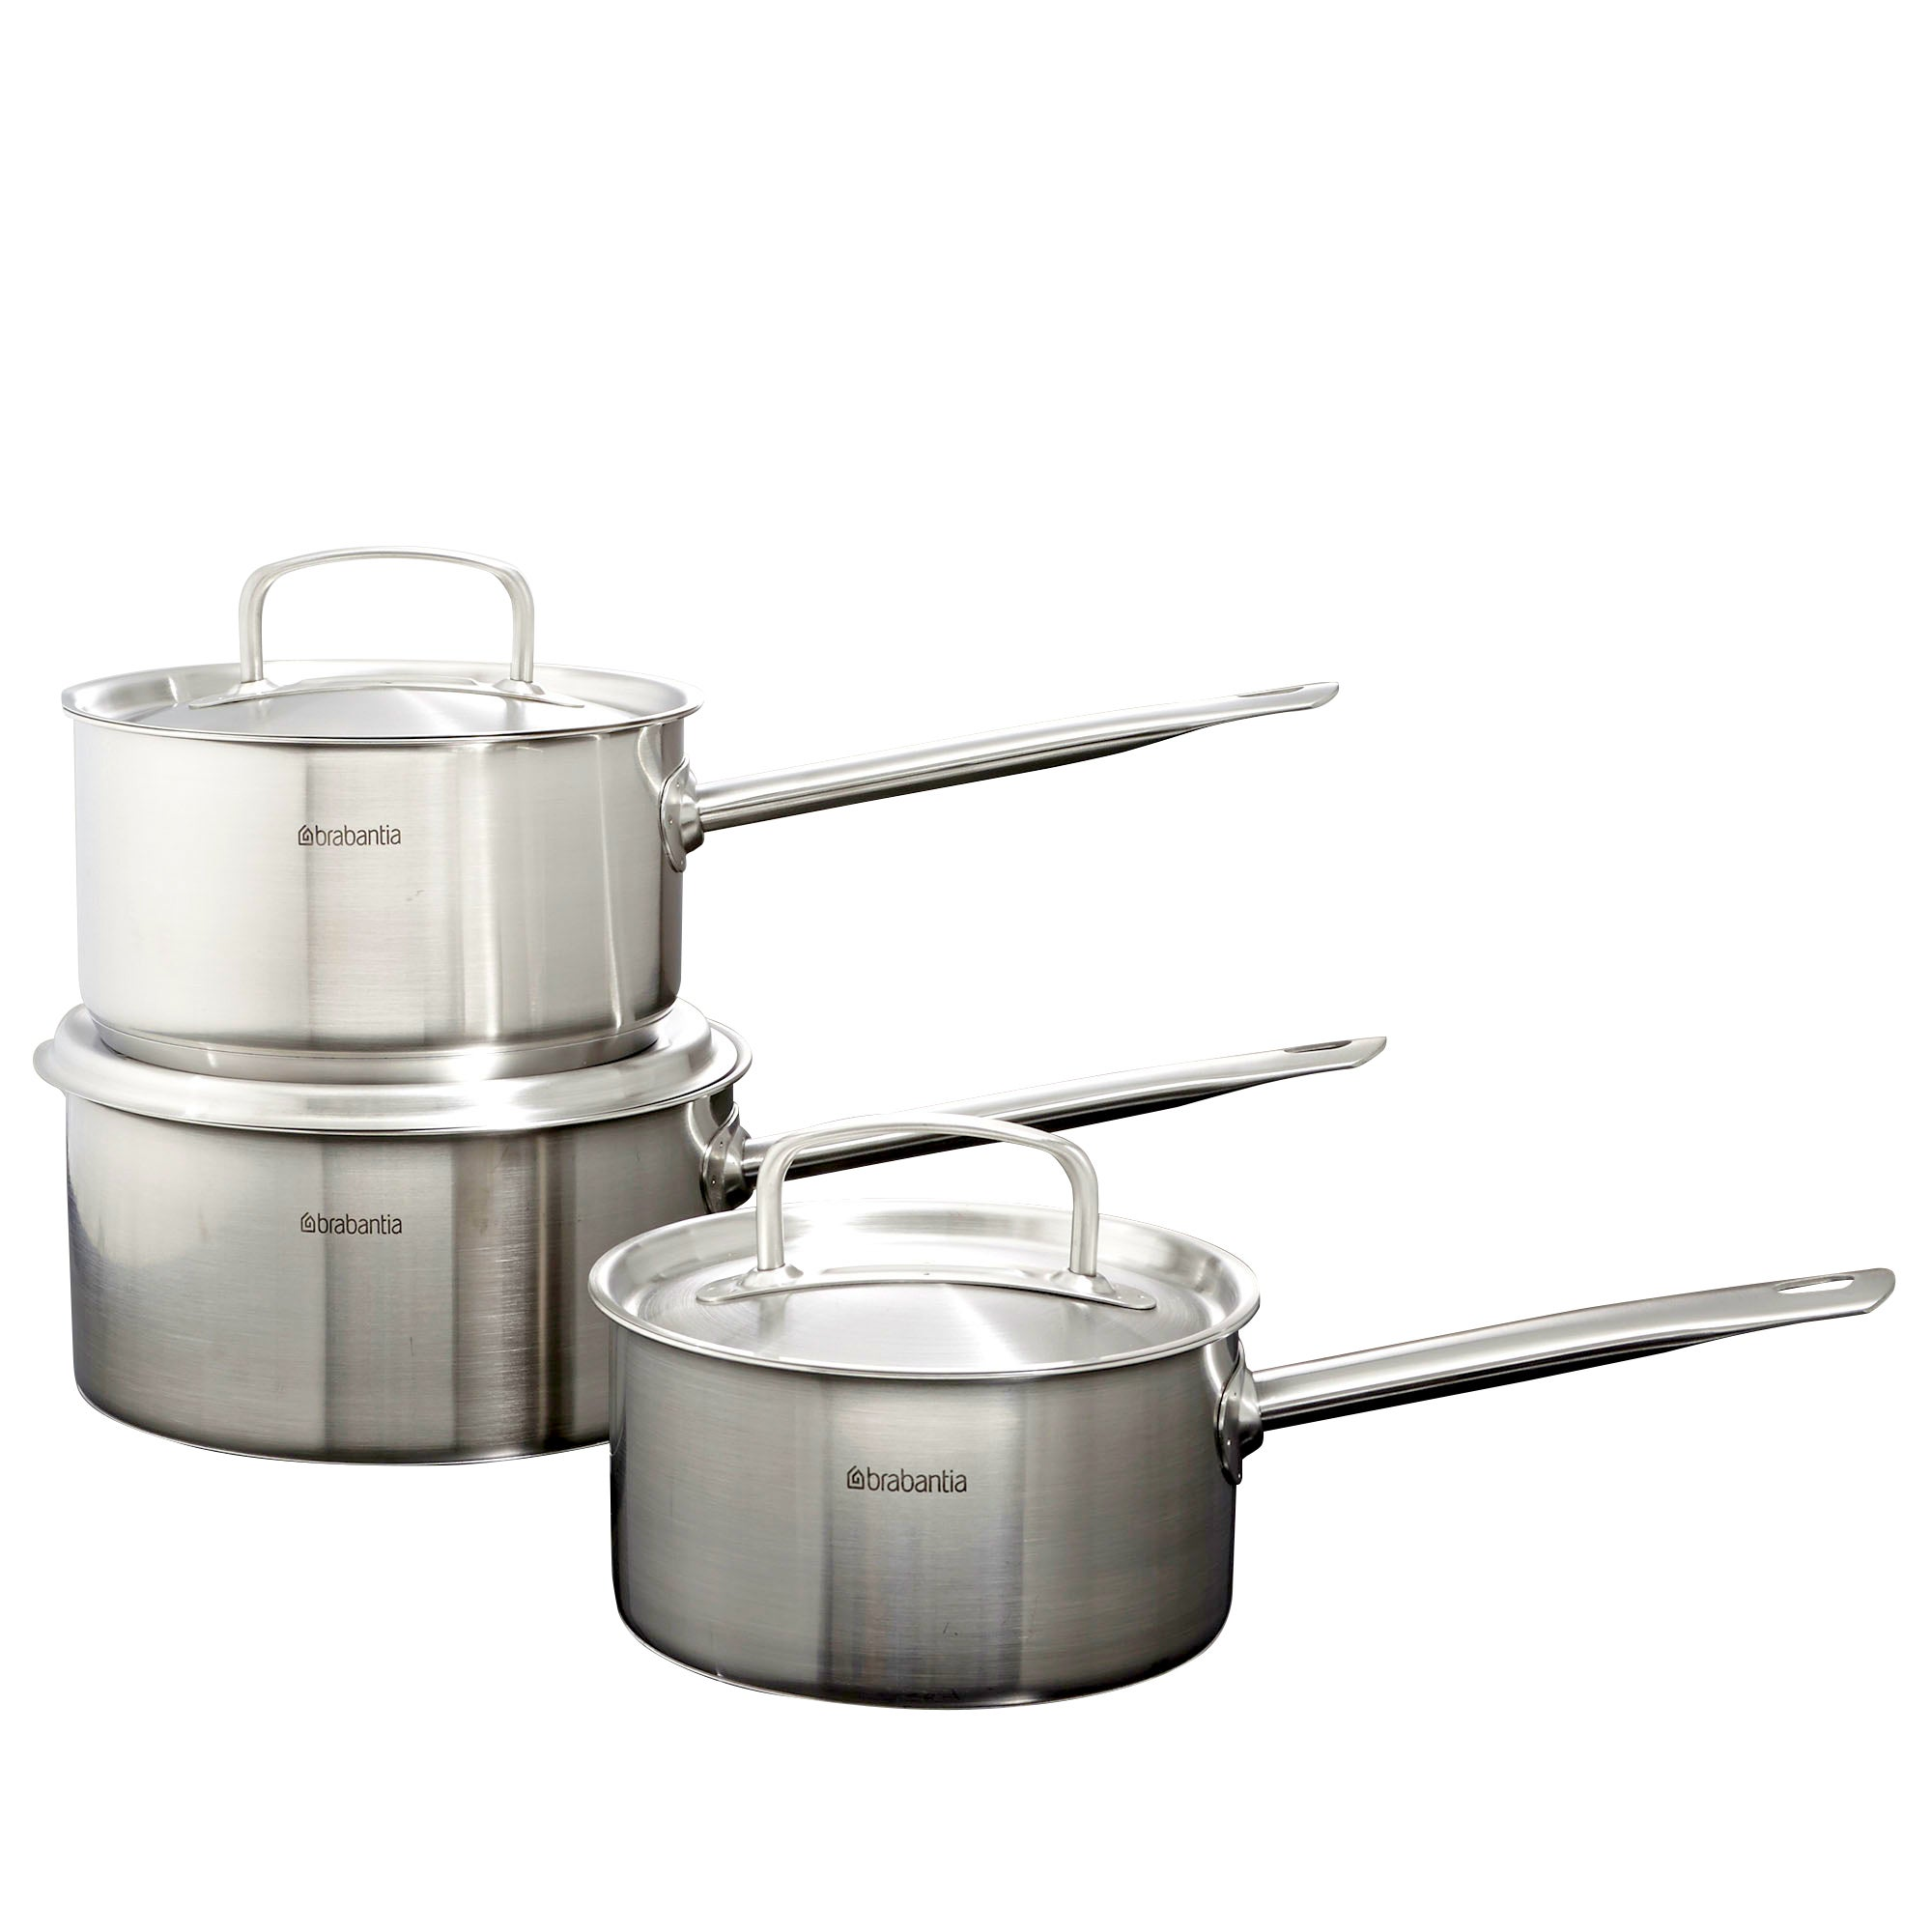 Brabantia Stainless Steel Three Piece Pan Set